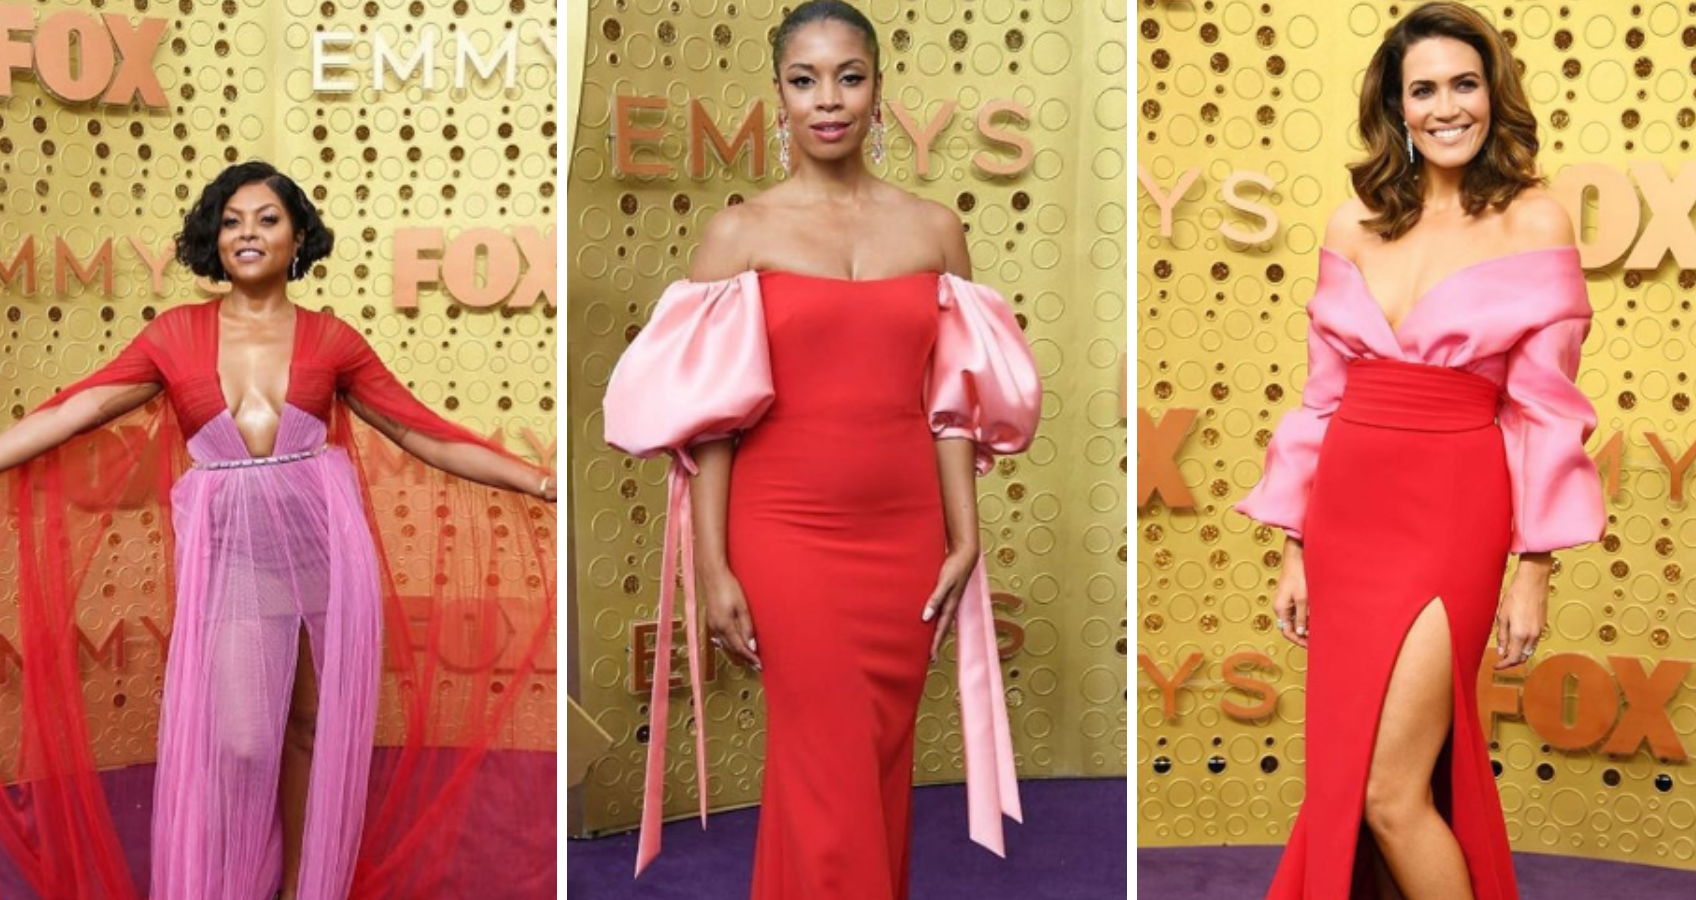 Emmy's 2019 : The Winning Combination is Red & Pink.